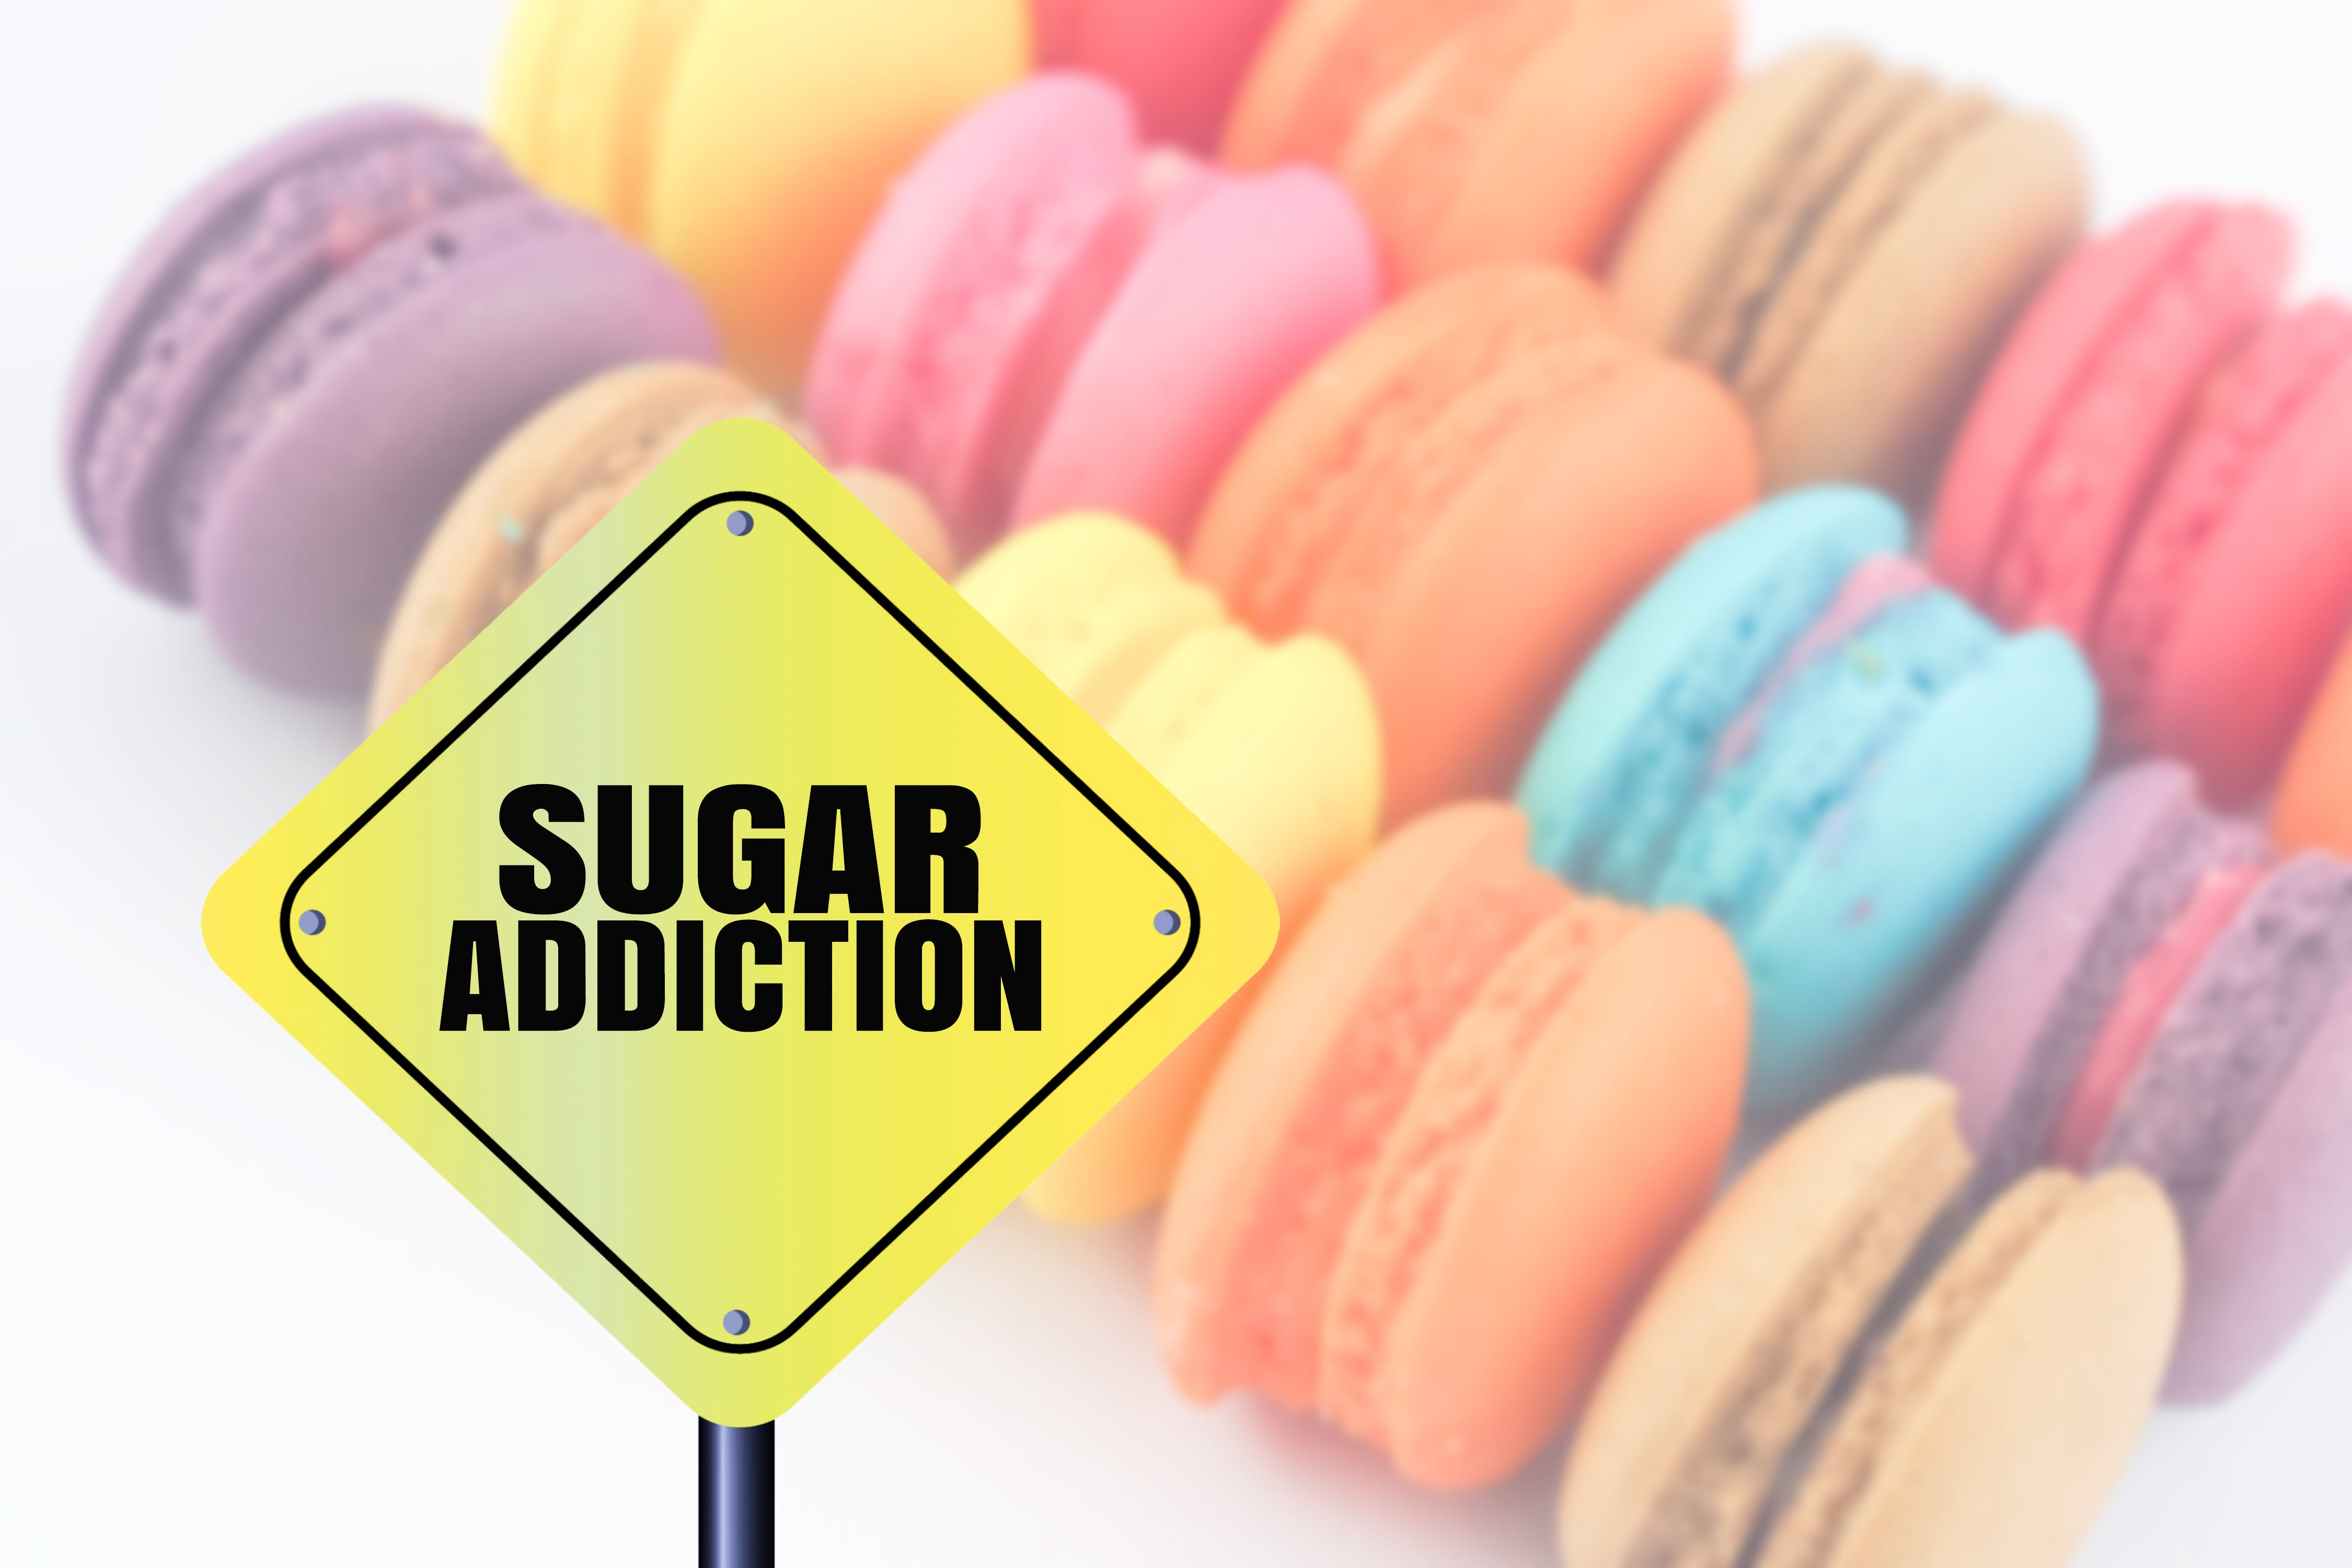 Processed food addiction — Is it real? Does it matter?